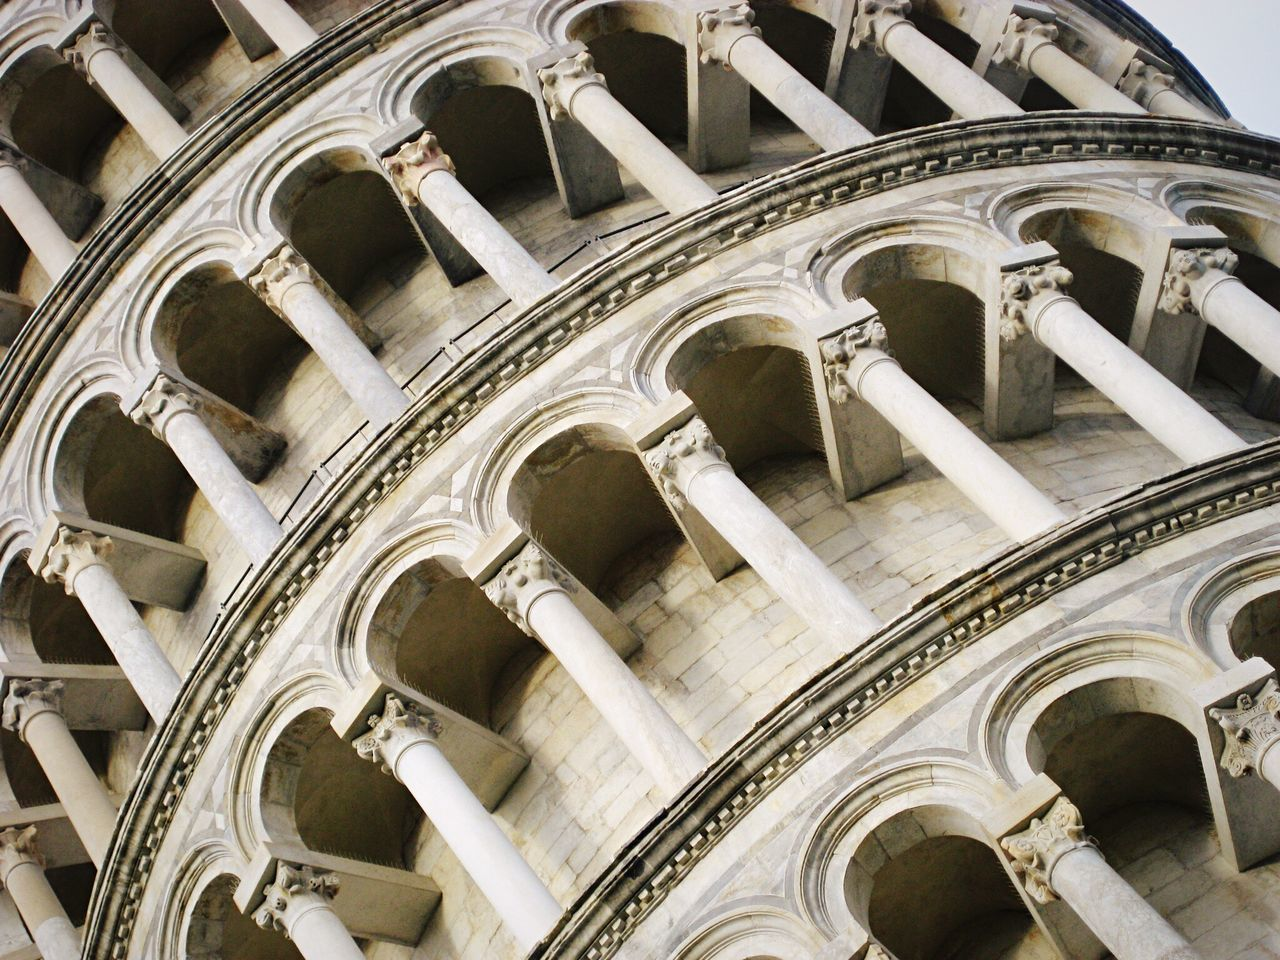 Tower of Pisa Architecture Low Angle View No People Façade Religion Outdoors Building Exterior Close-up Day Place Of Worship Pisa Pisa Tower Pisa Italy